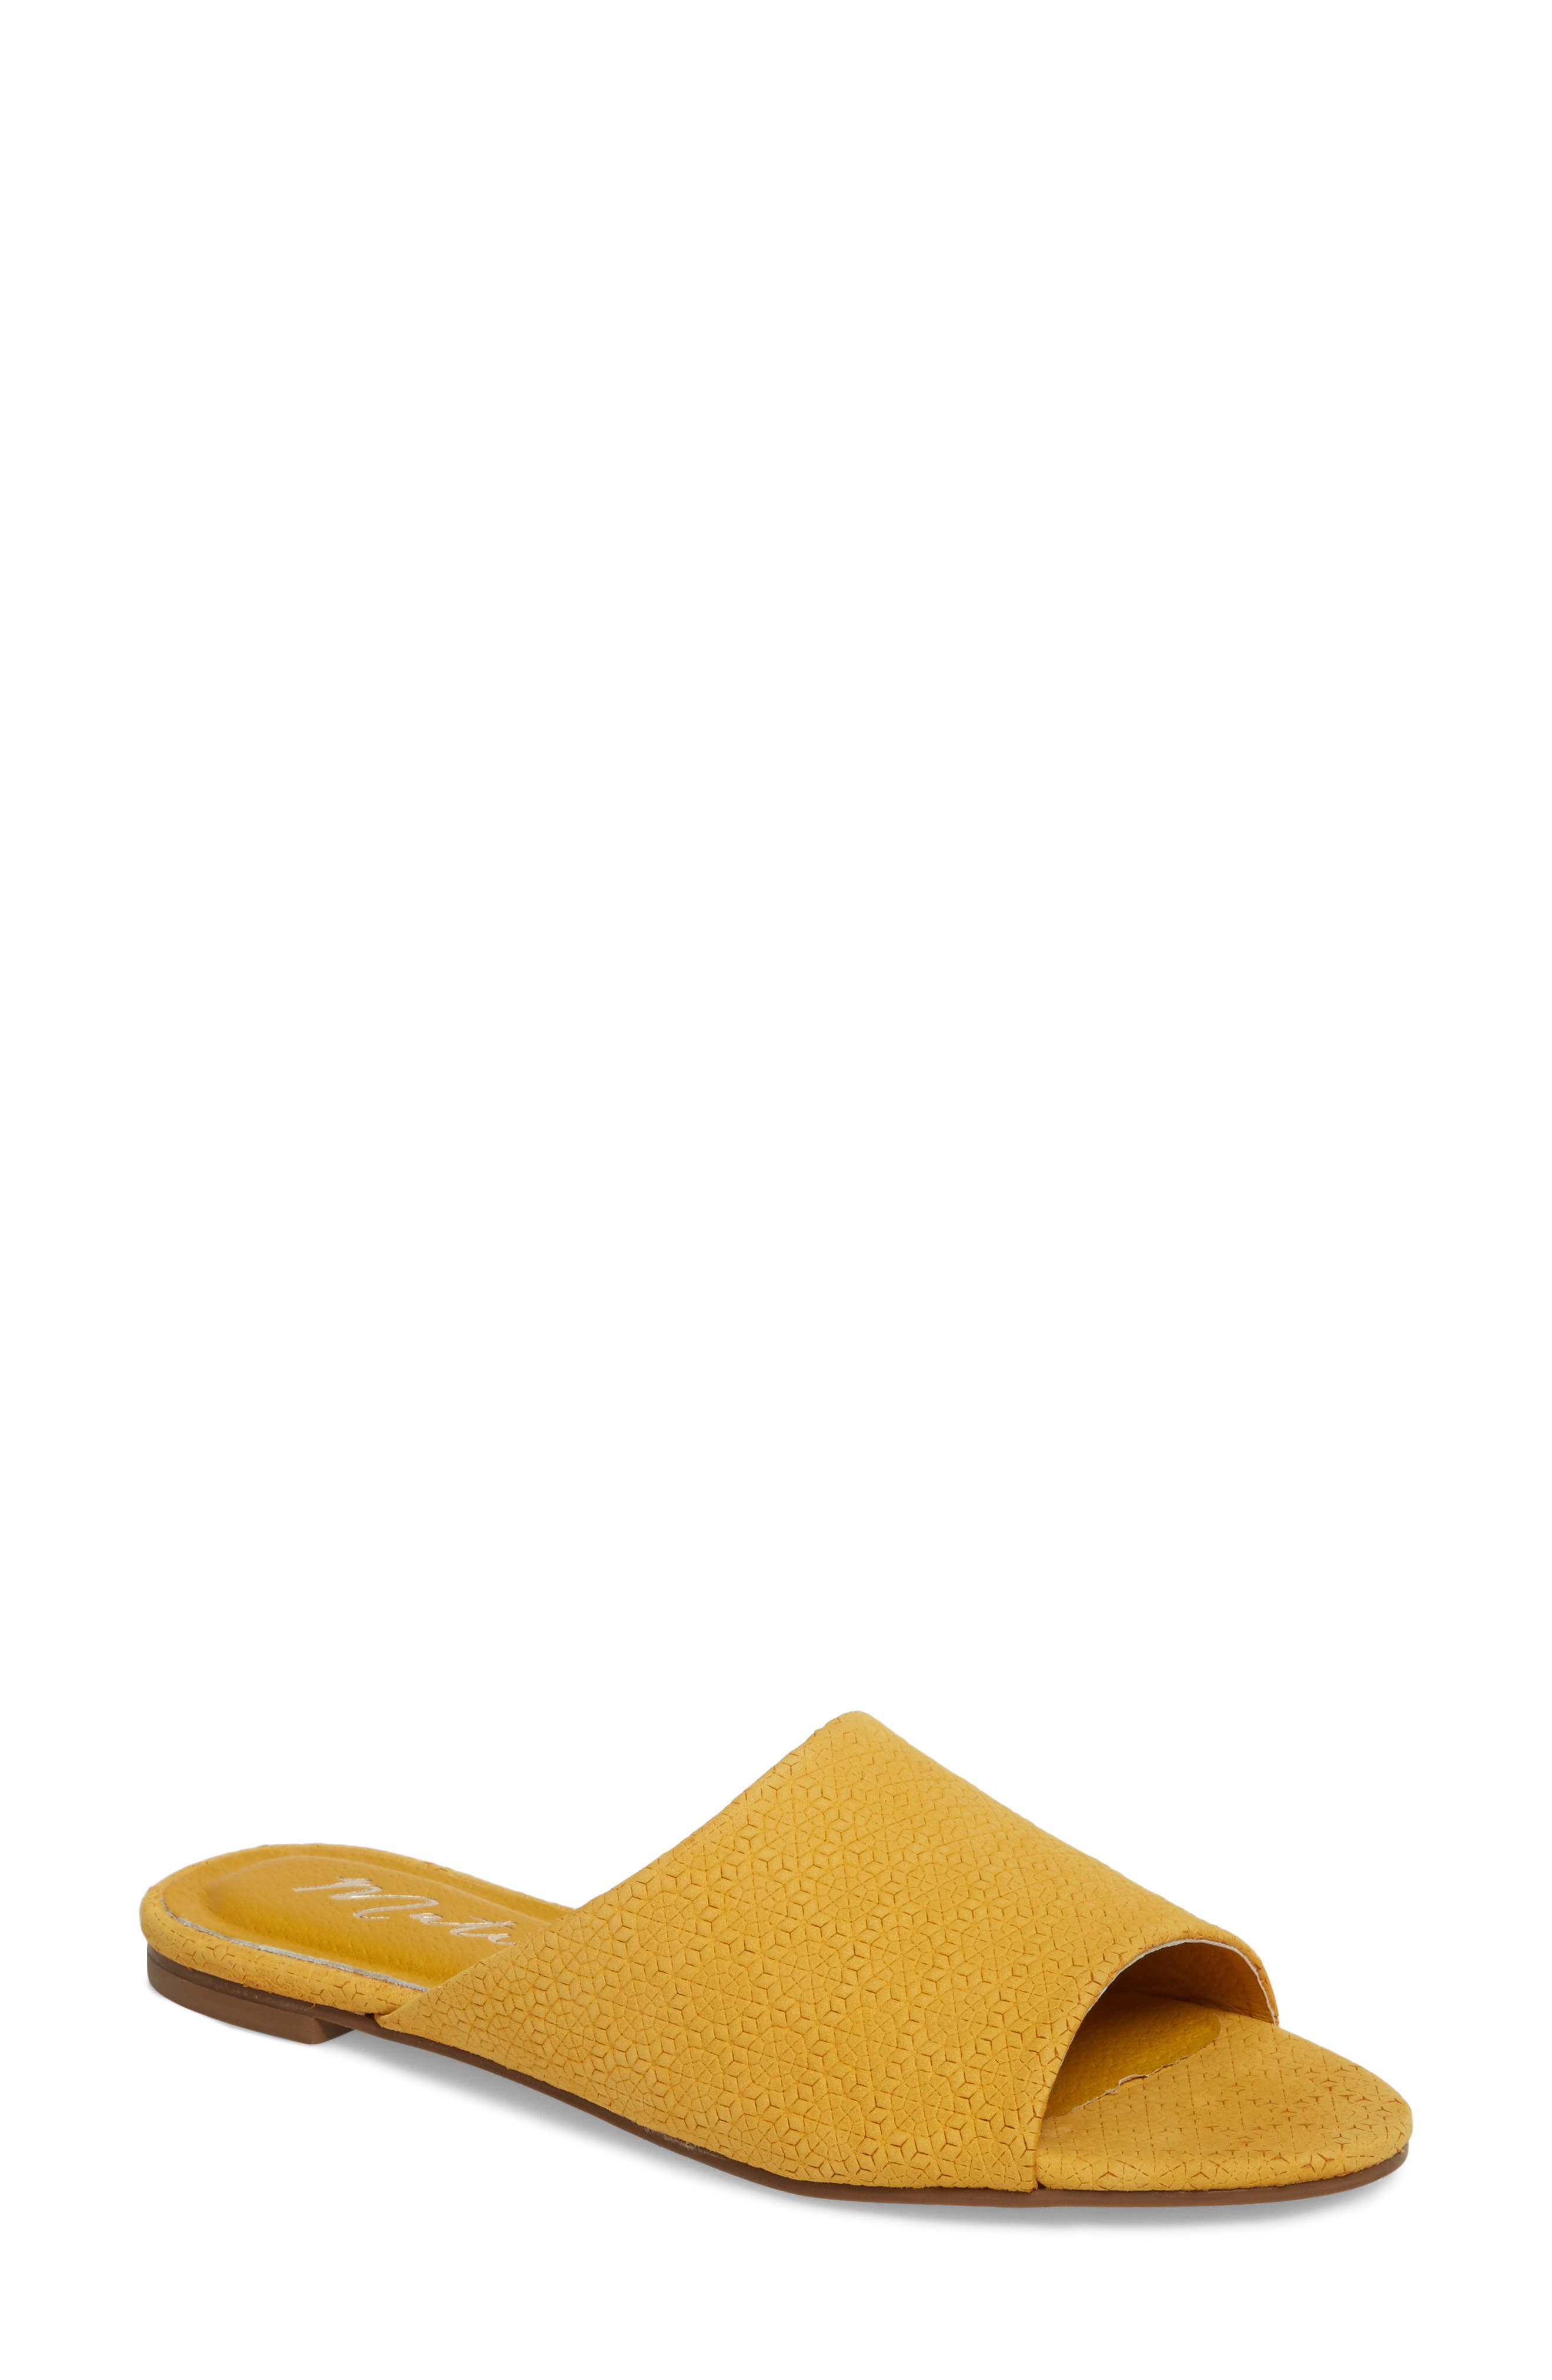 Lira Sandal,                             Main thumbnail 1, color,                             MANGO LEATHER